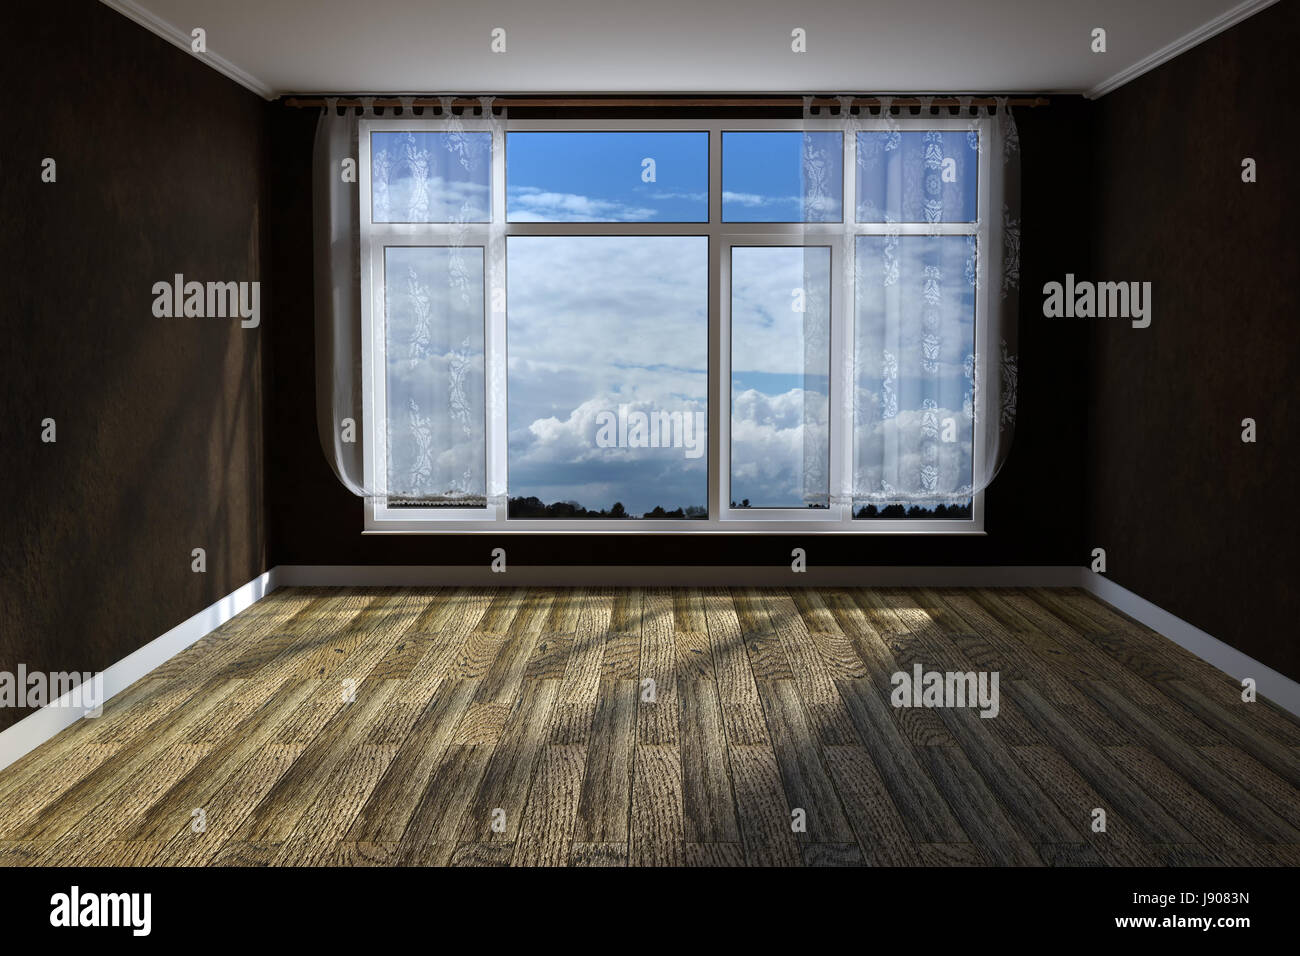 3d rendering of empty unfurnished livingroom with rustic wooden floor and grunge wall covering - Stock Image